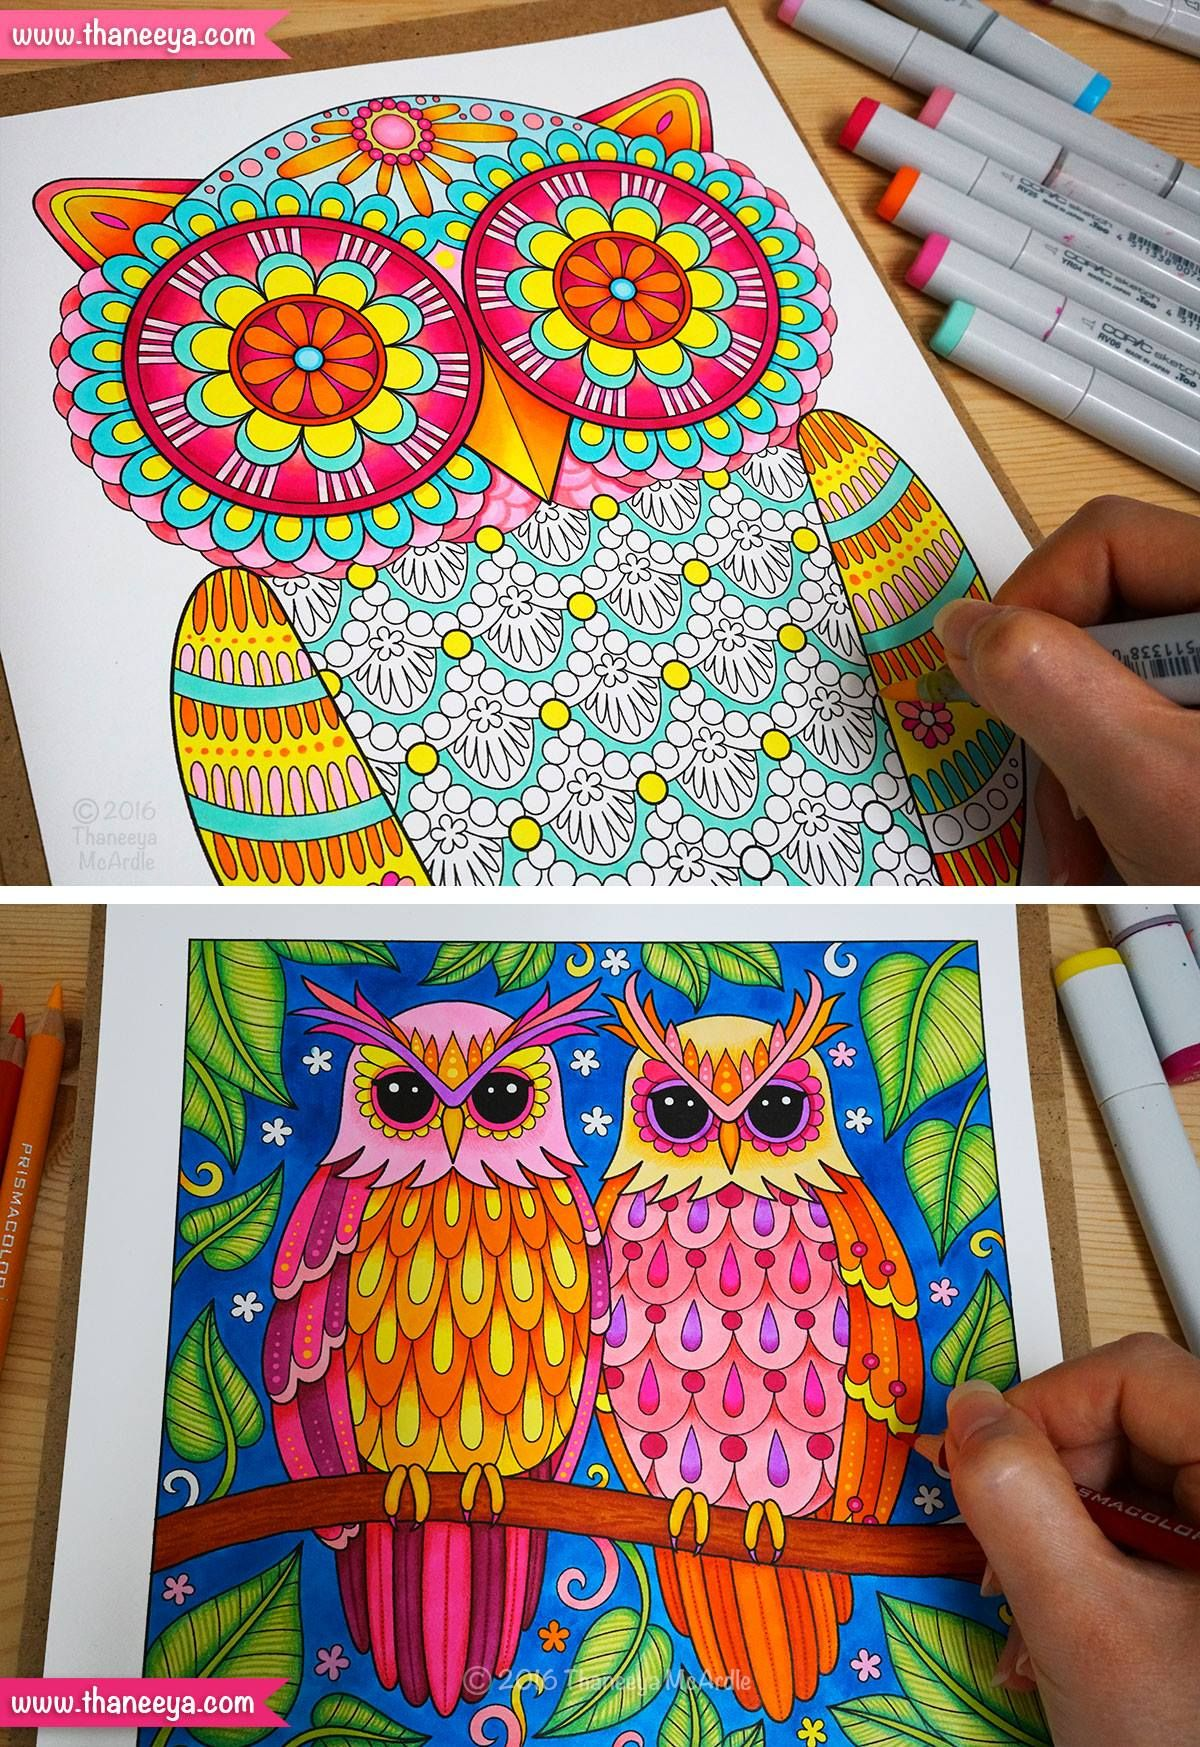 Groovy Owls Coloring Book By Thaneeya Mcardle Owl Coloring Pages Coloring Books Student Art